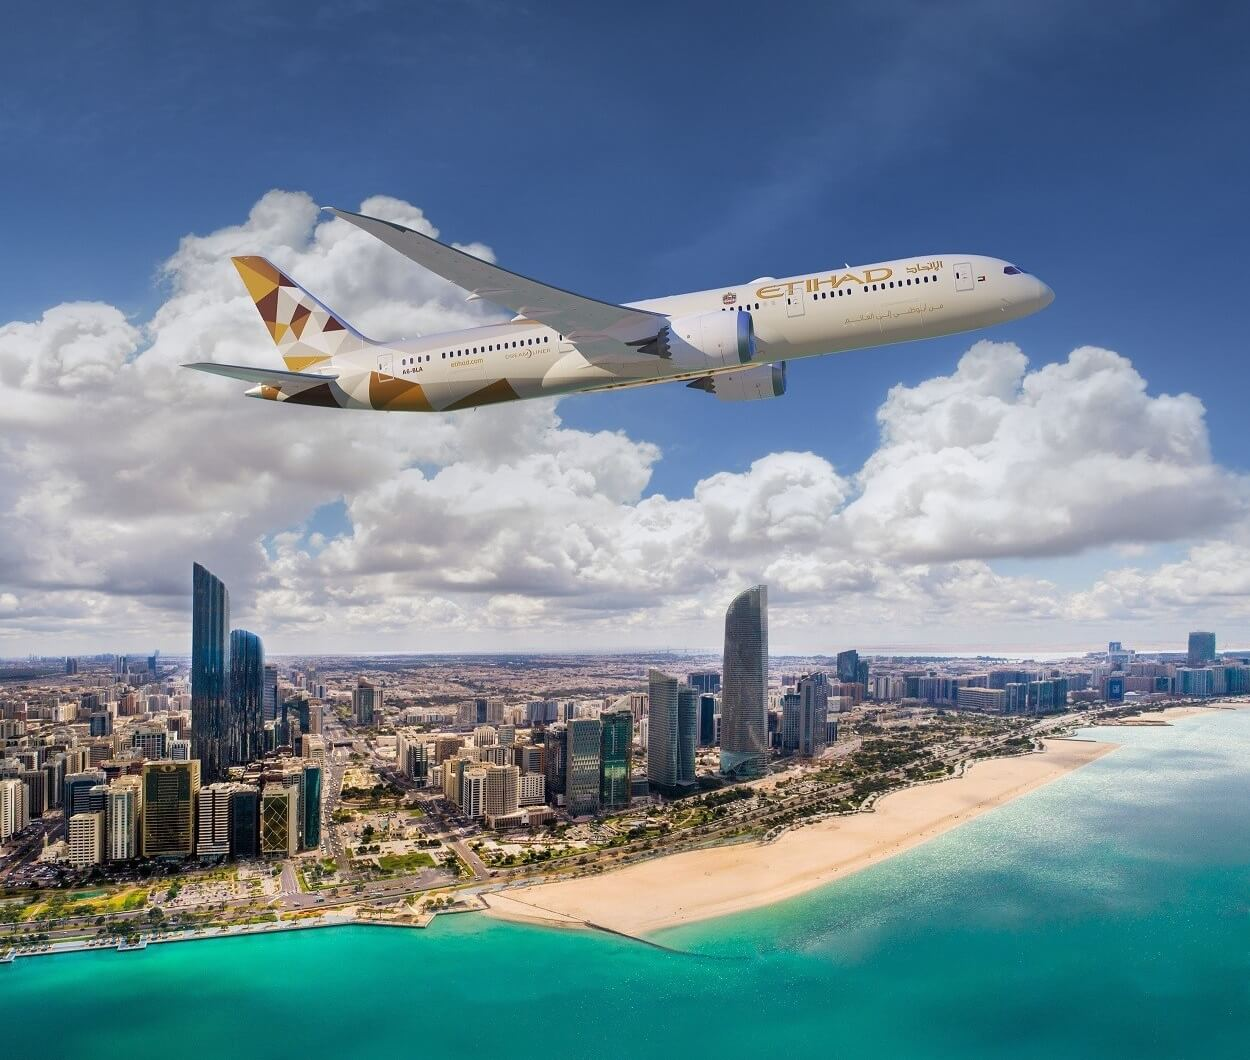 Etihad Airways re-launched its guest loyalty program